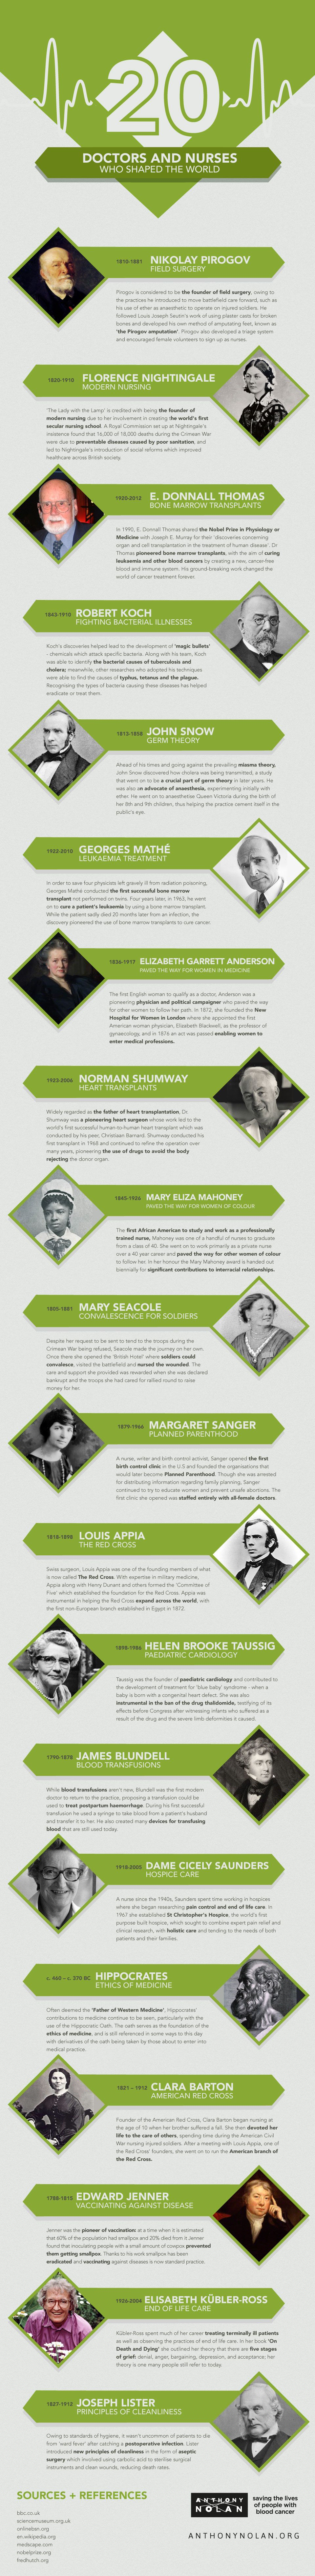 20 Doctors & Nurses Who Shaped the World